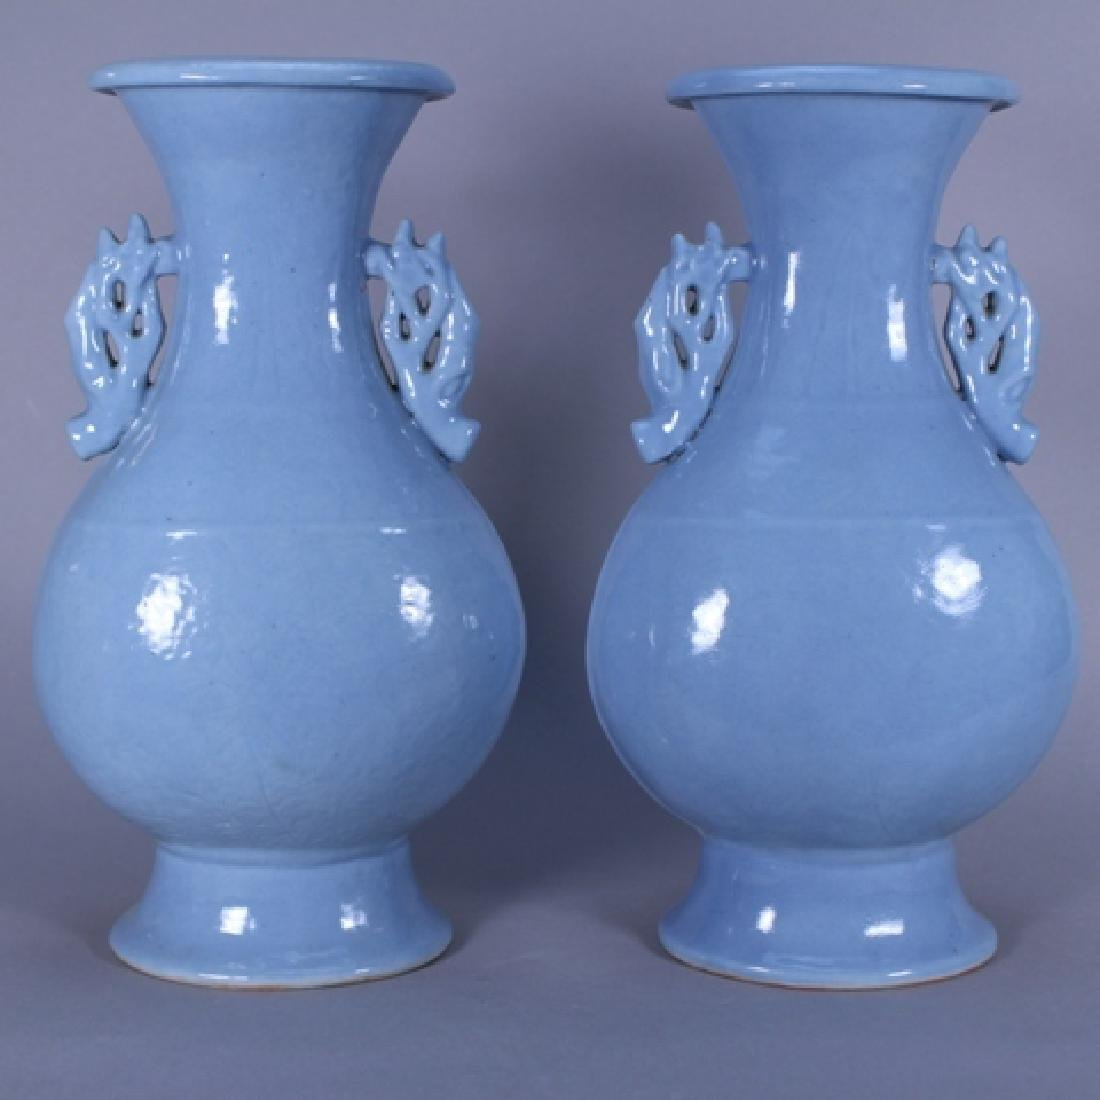 Pair of Blue Chinese Export Vase Molded Ceramic